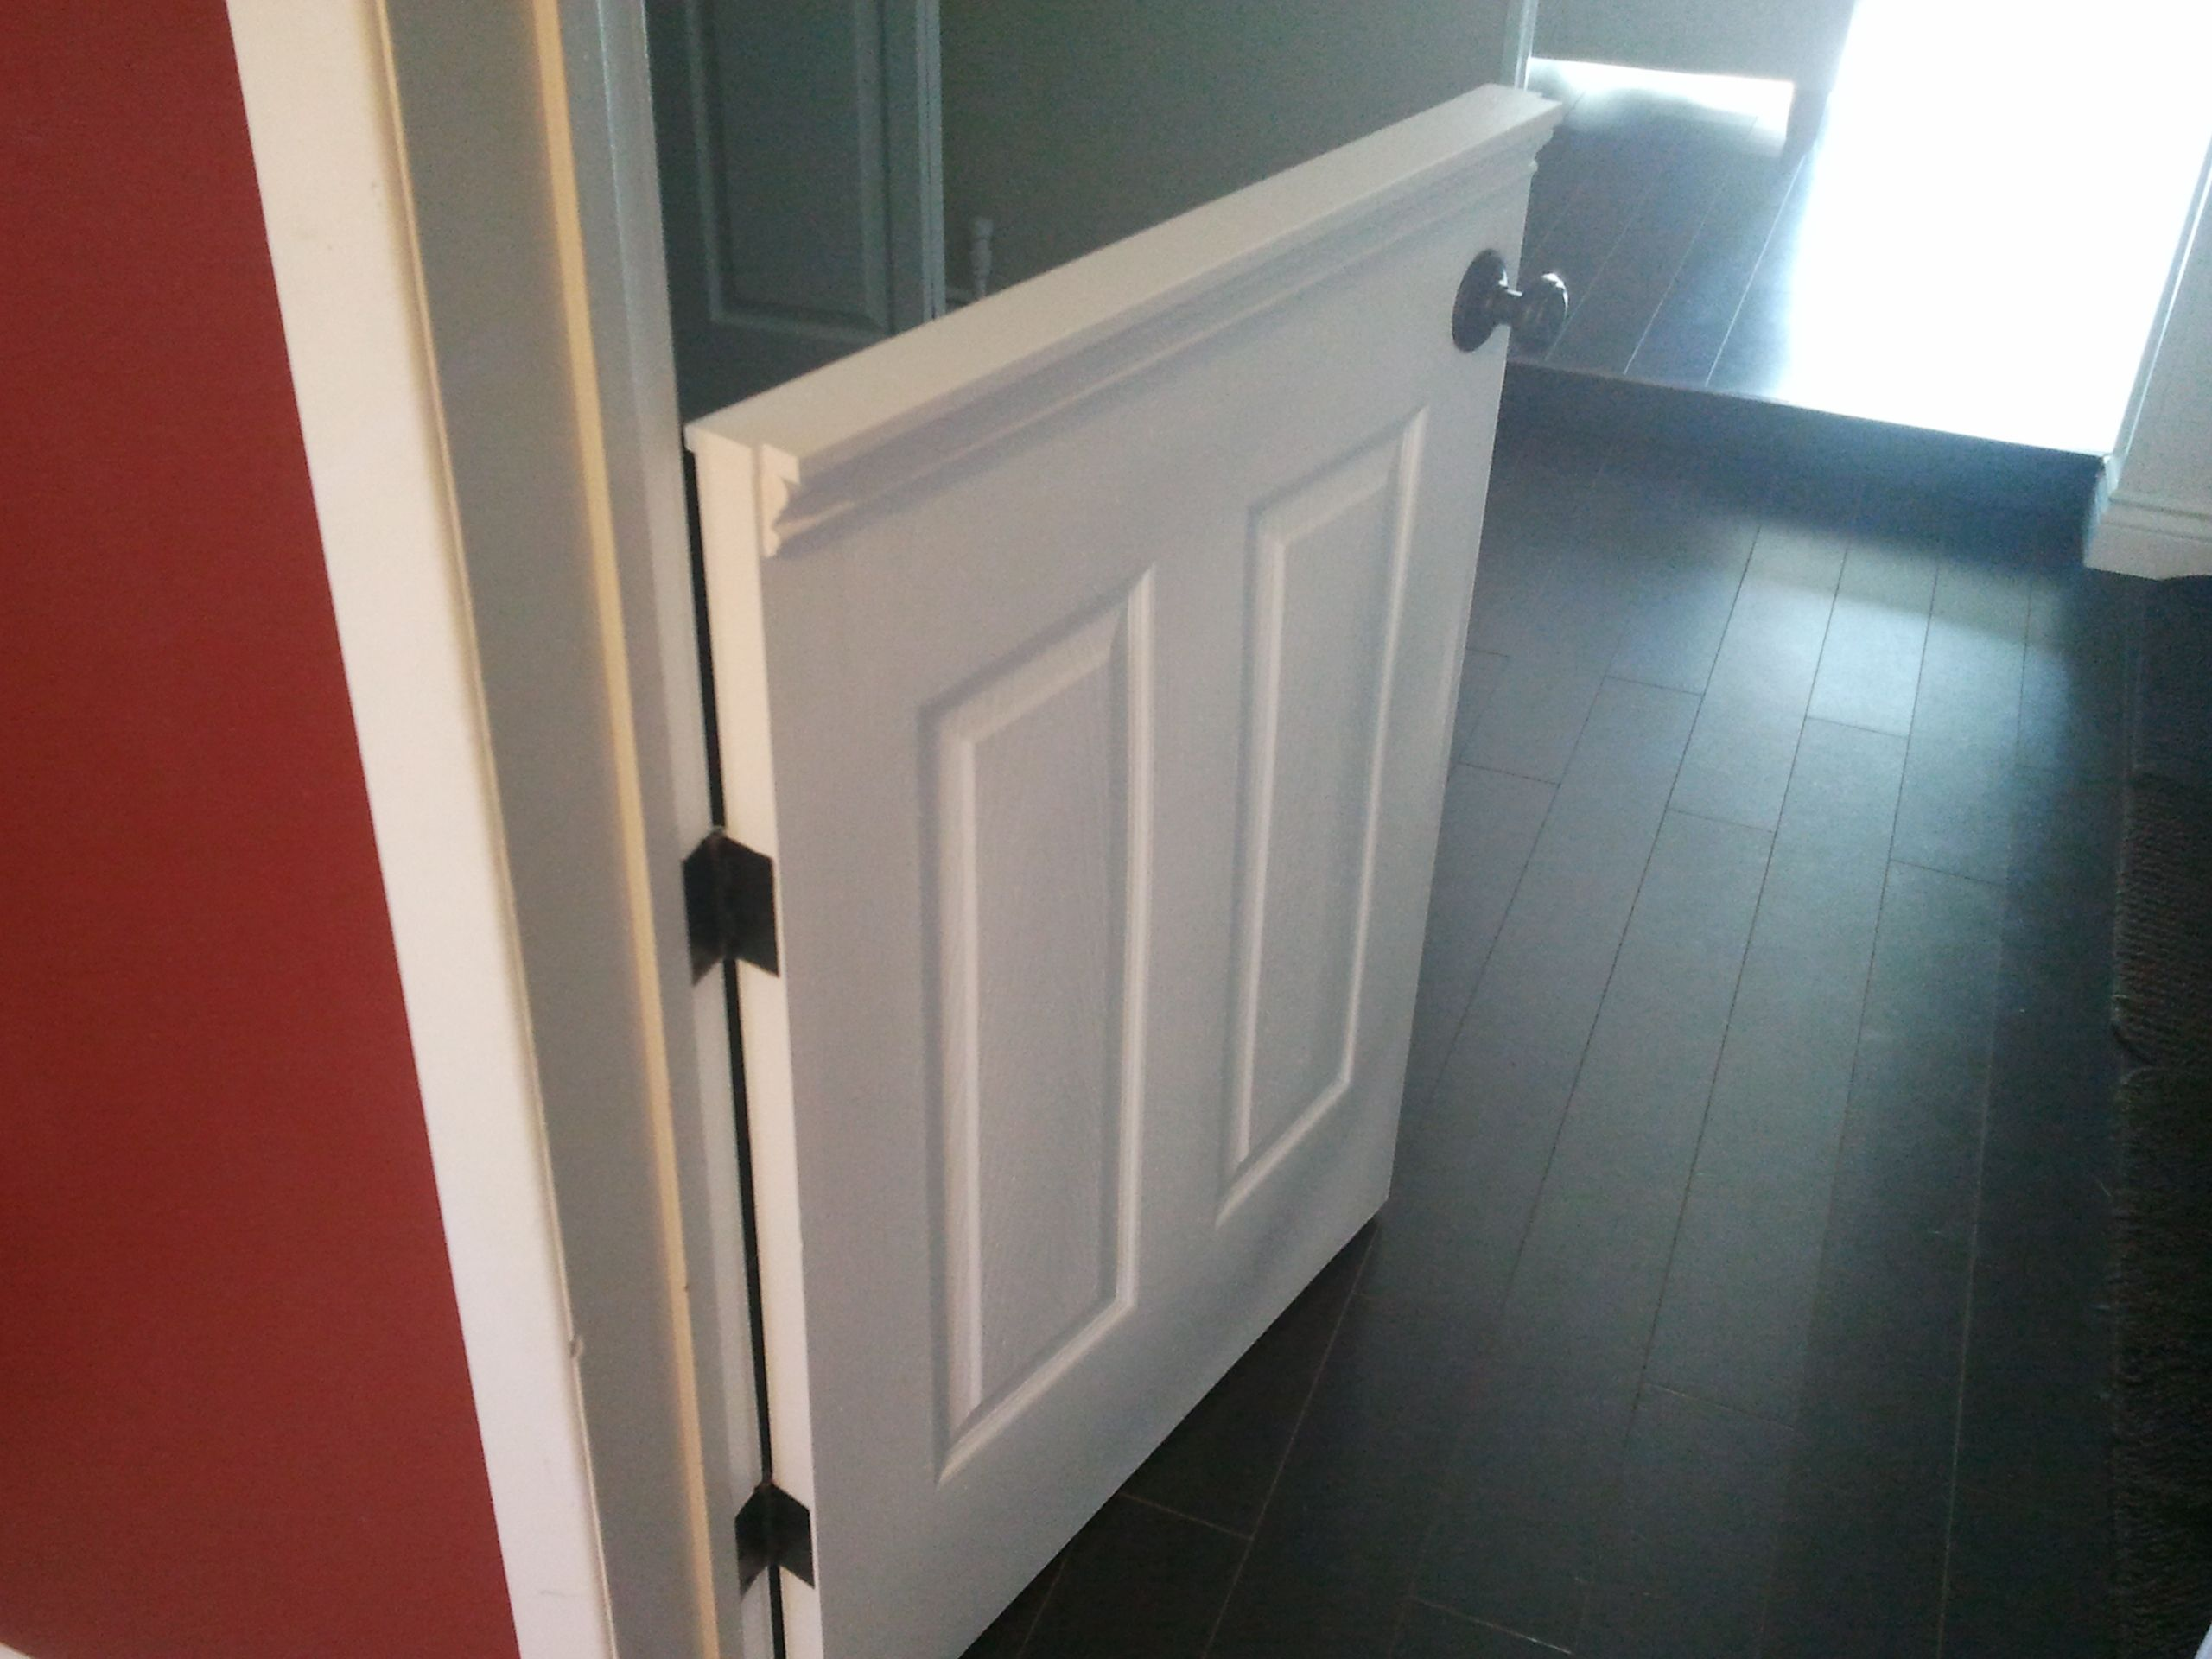 Hollow metal doors door amp gate usa - Half Doors Installed A Half Door To Isolate Our Dog From The Laminate Flooring